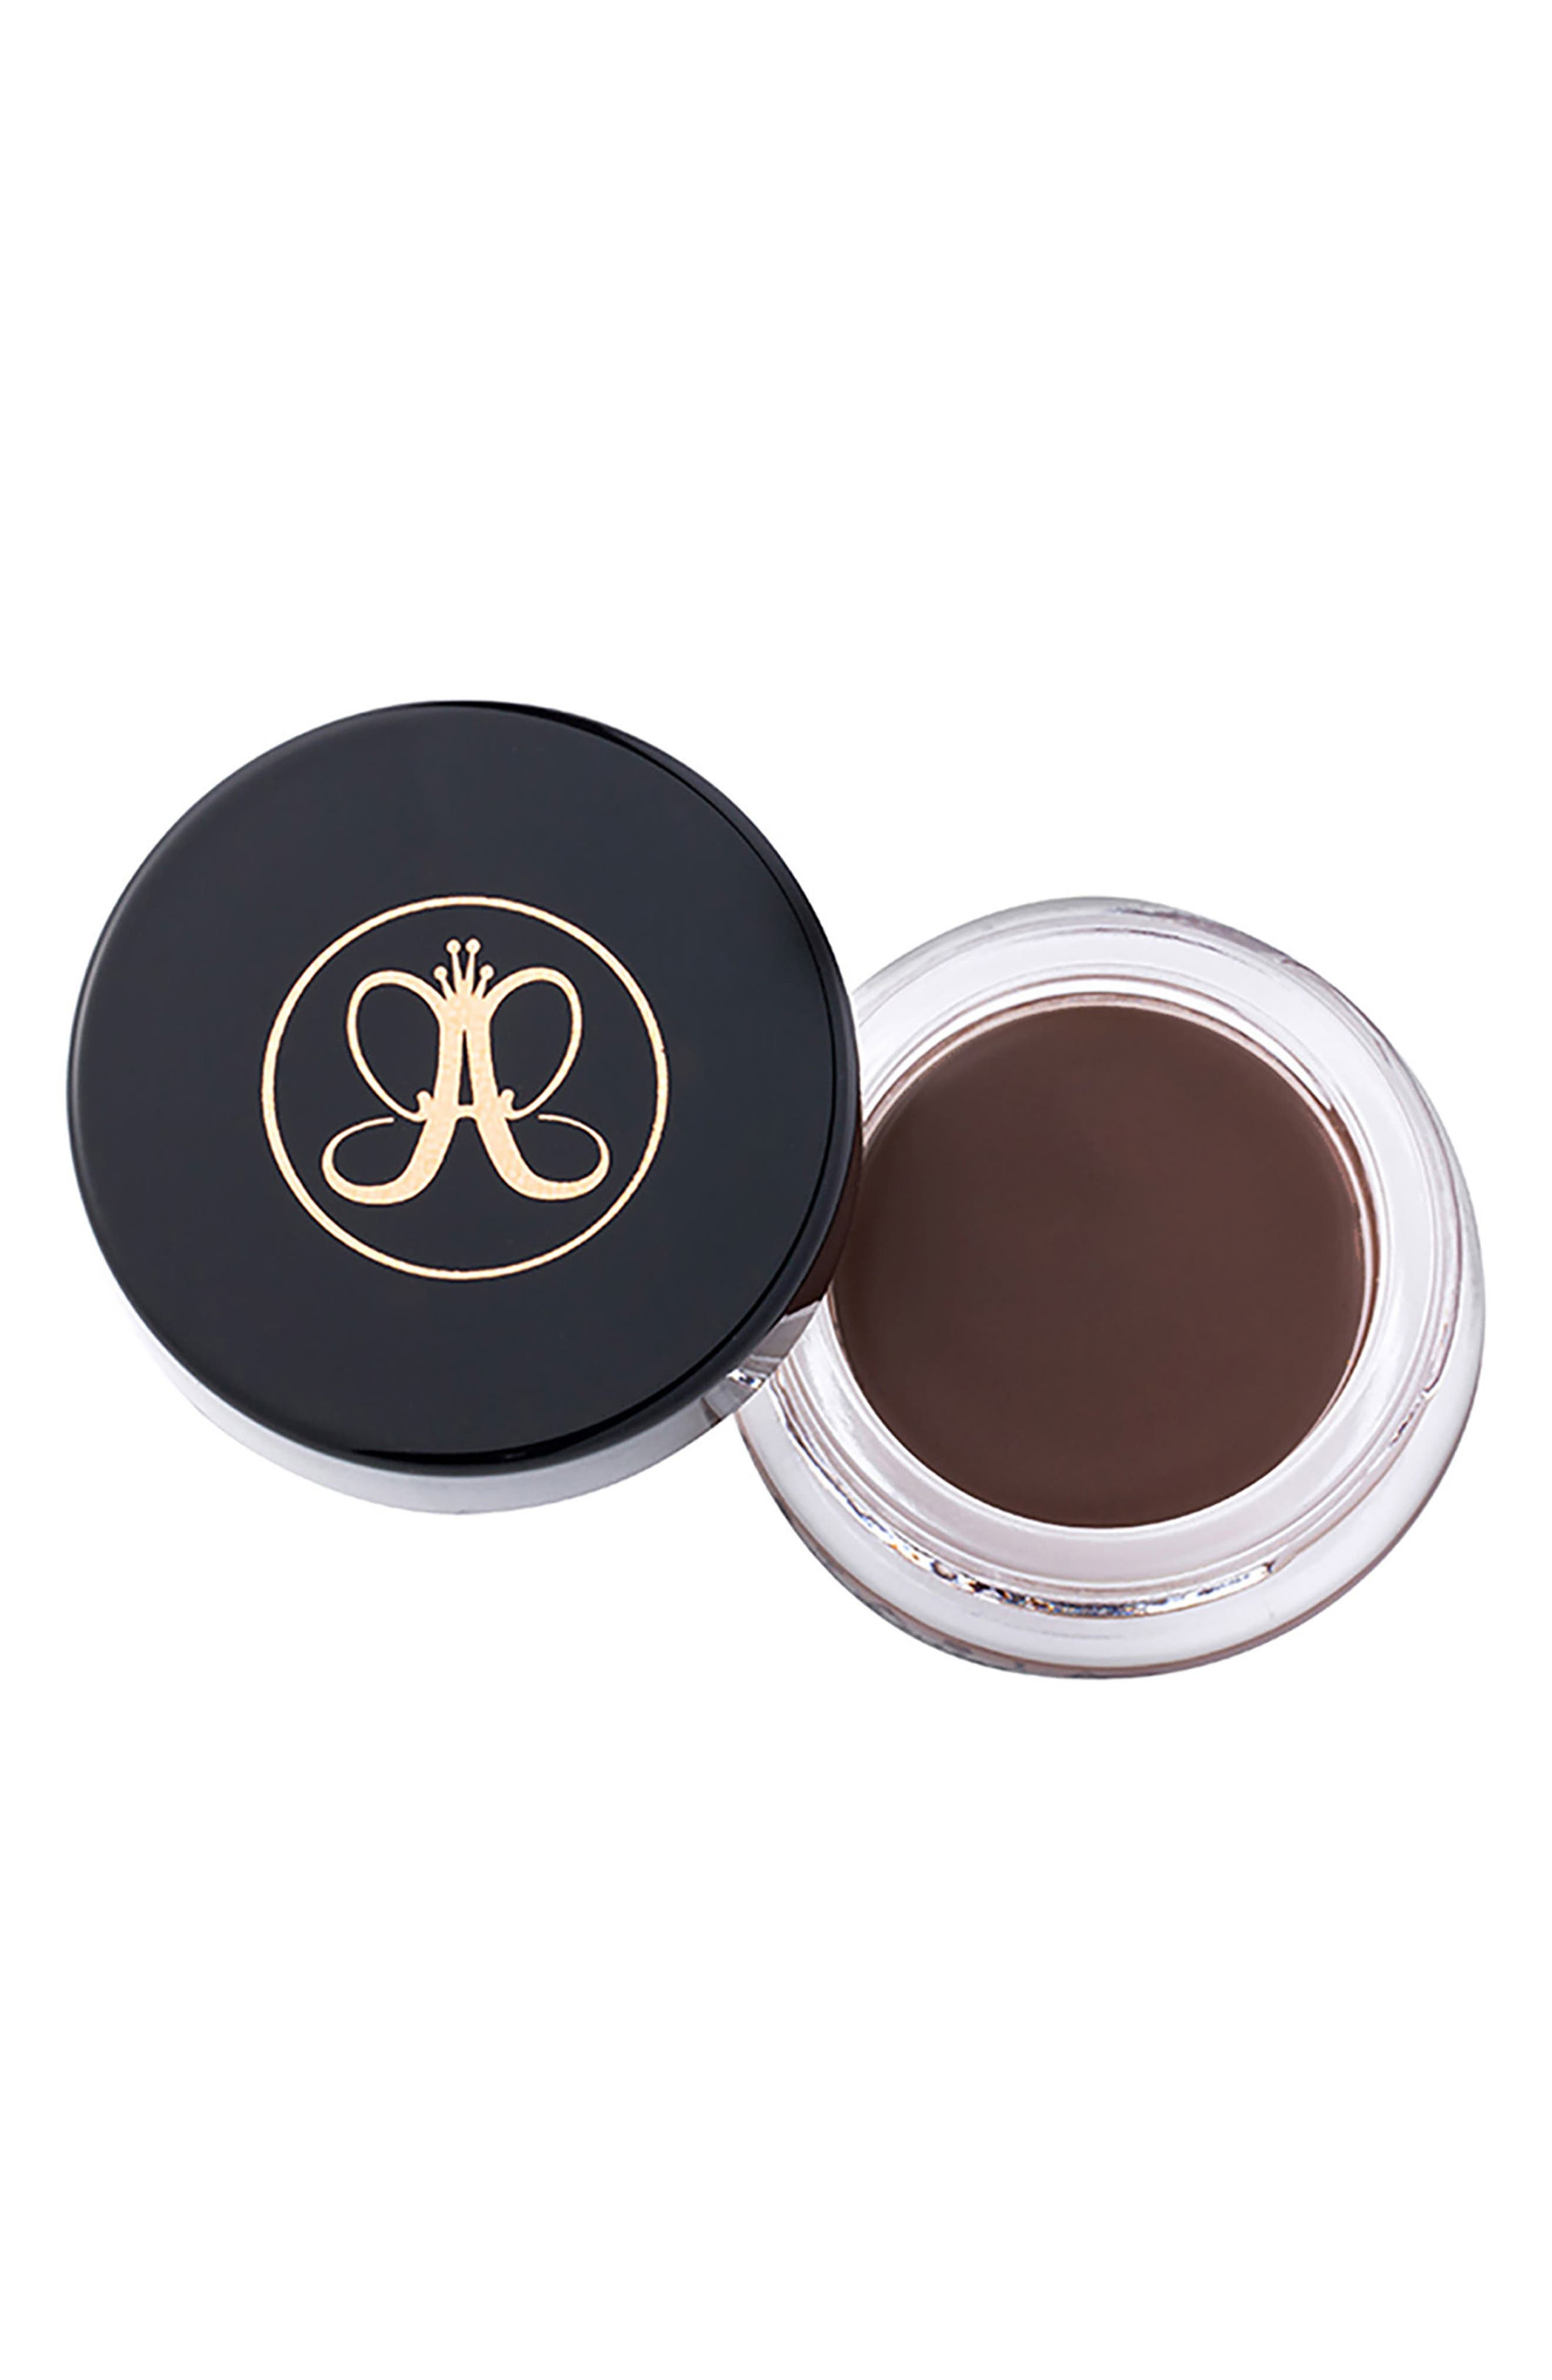 Alternate Image 1 Selected - Anastasia Beverly Hills Dipbrow Pomade Waterproof Brow Color